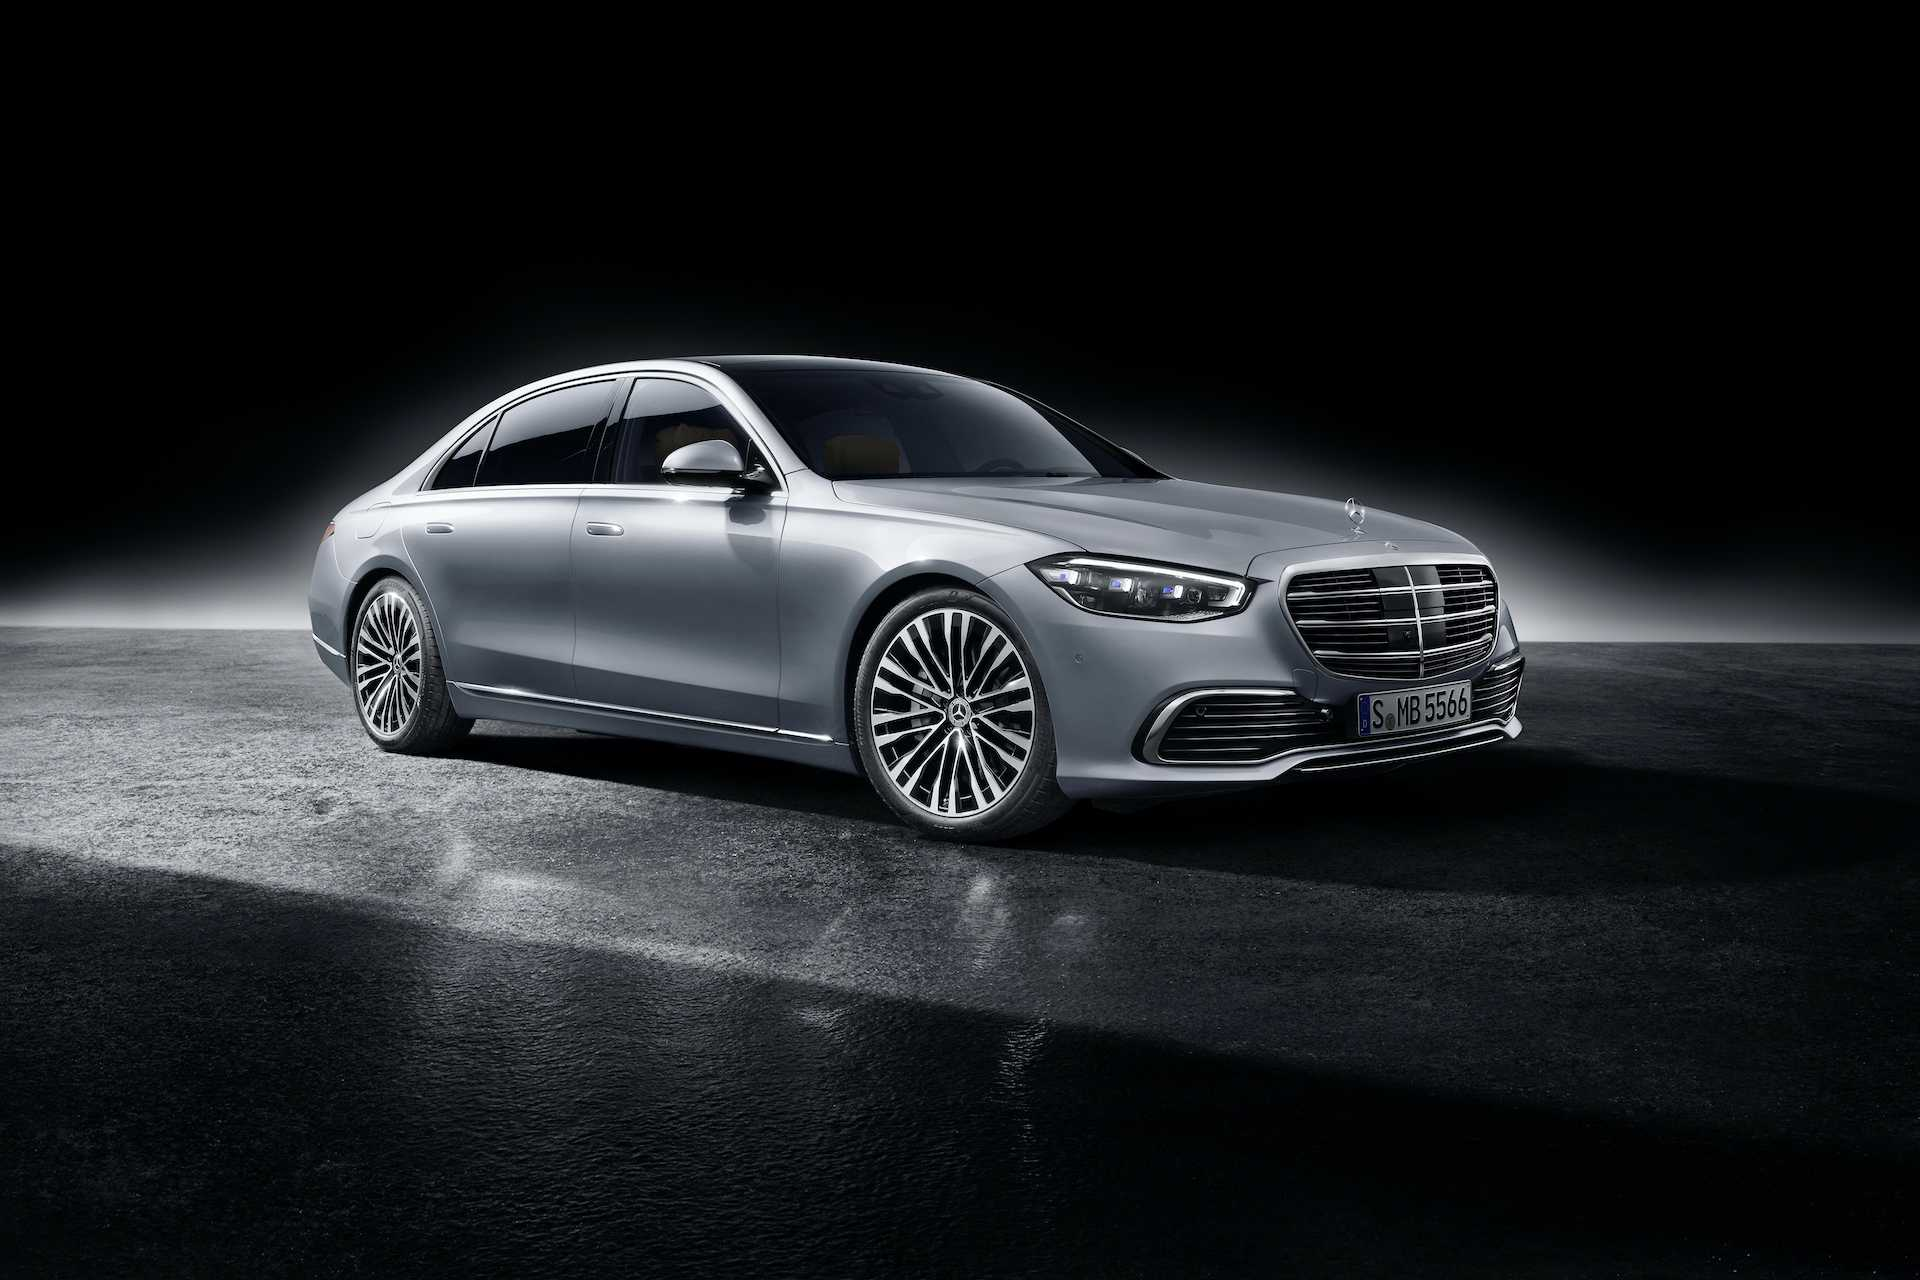 2021 Mercedes Benz S-Class Brings in New Driver Assistance Features